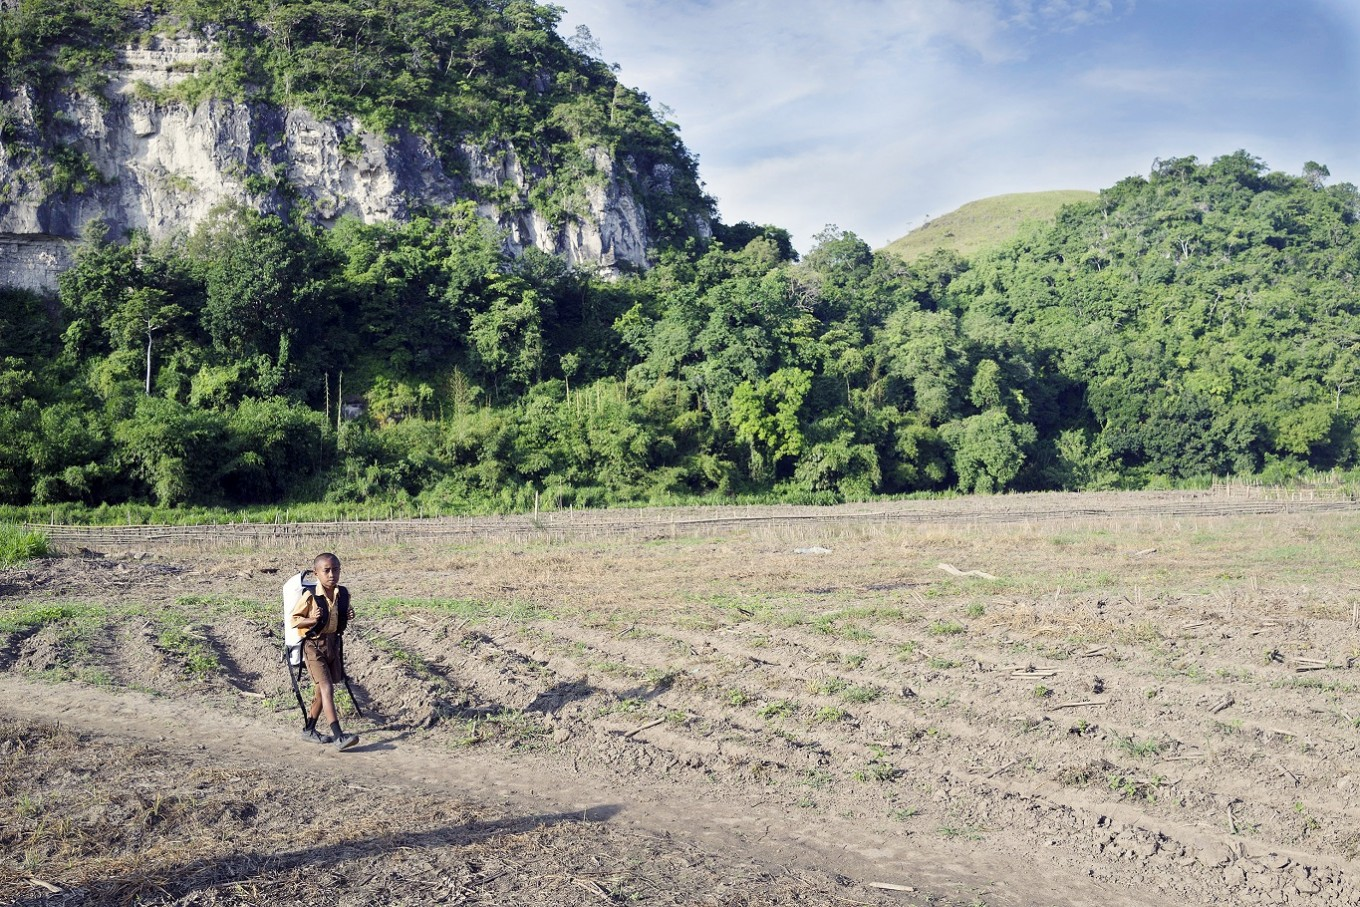 Long walk to freedom: After the river, the children are now ready for their final challenge; a 90-minute walk across mountainous terrain to their school.